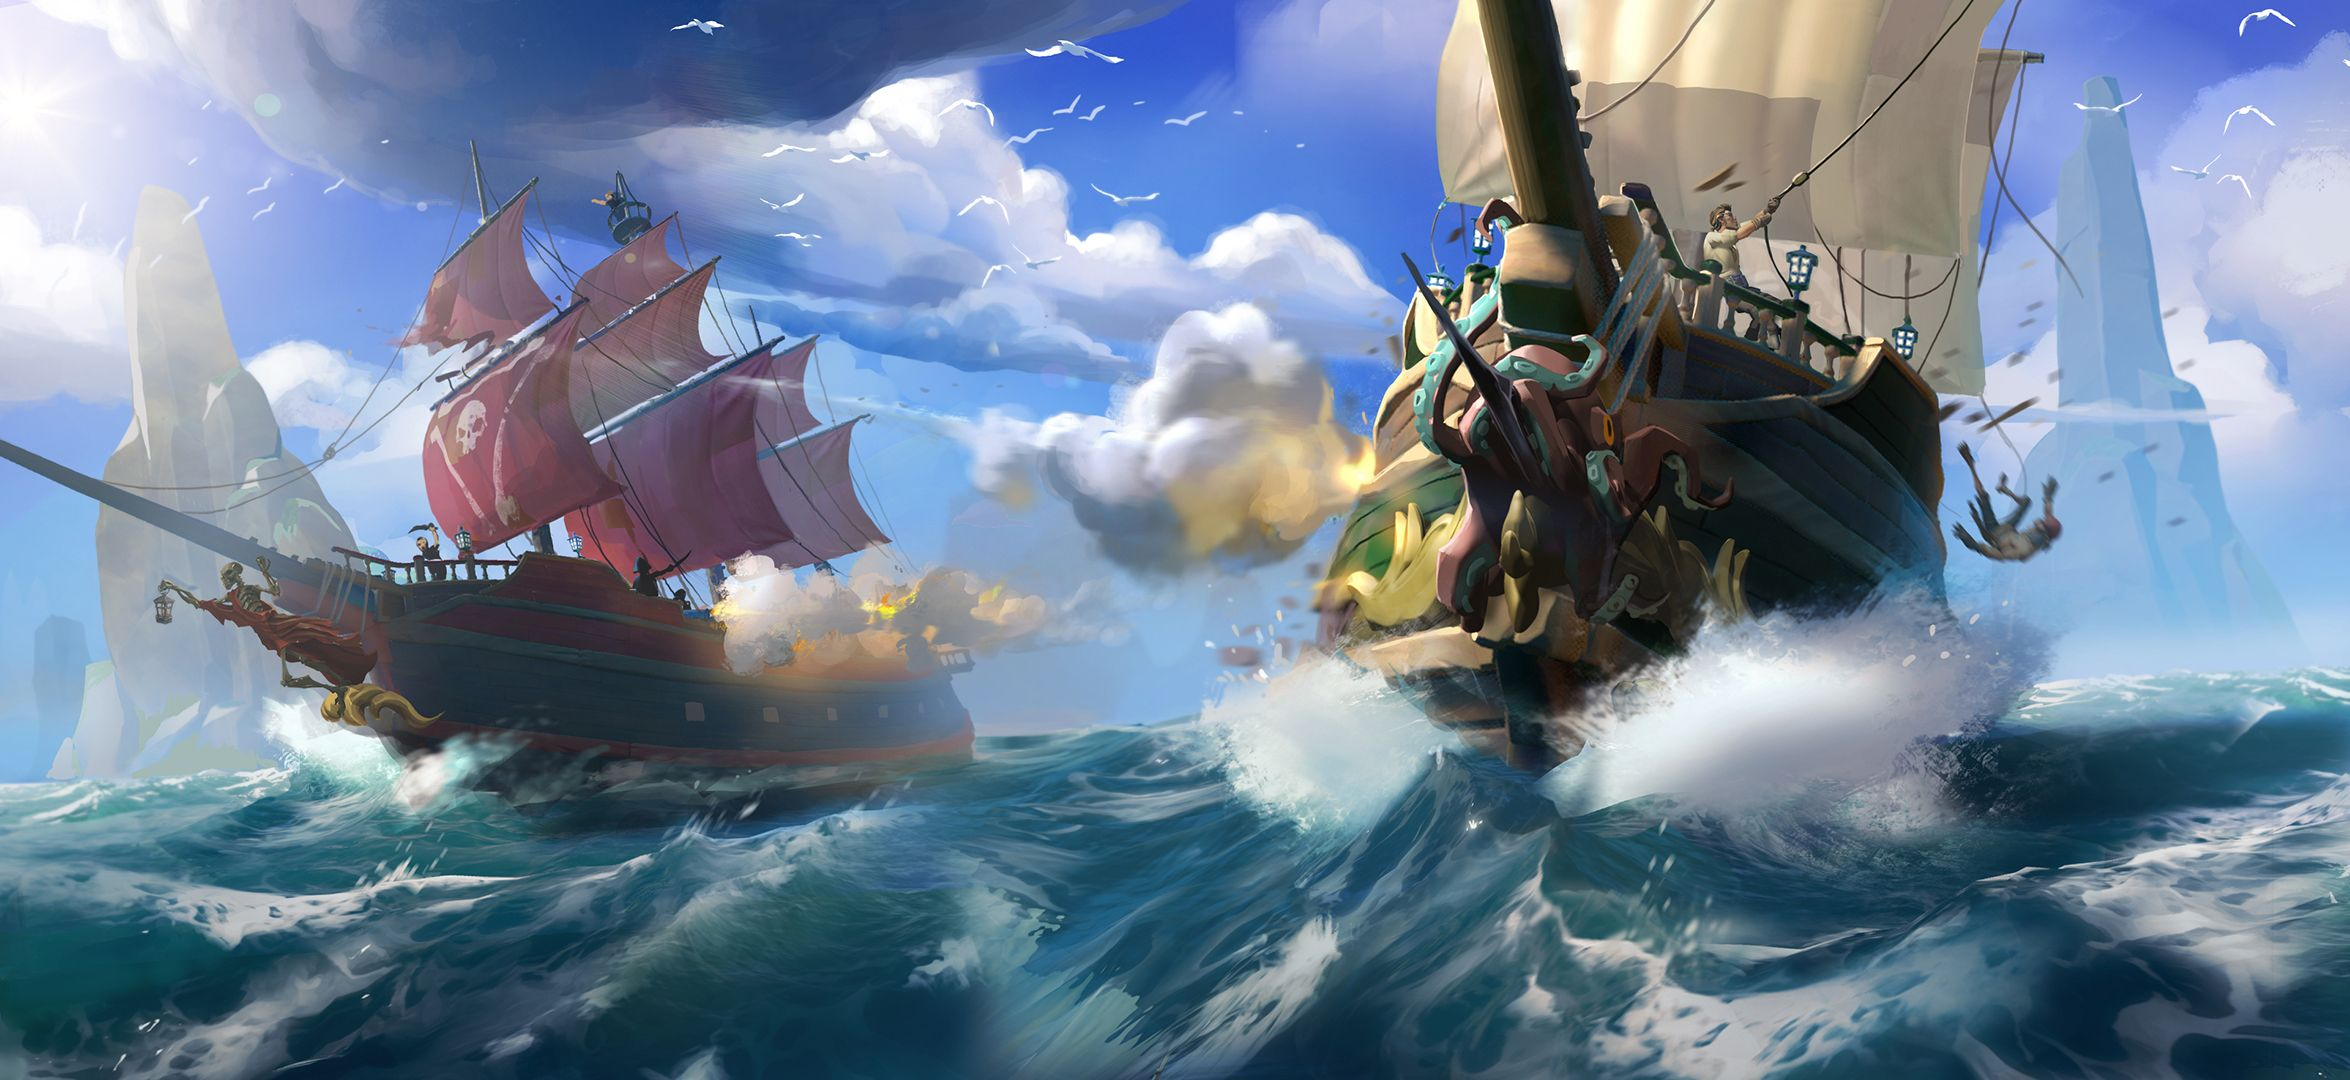 Sea of Thieves [2350x1080], HQ Backgrounds | Sea of thieves ...